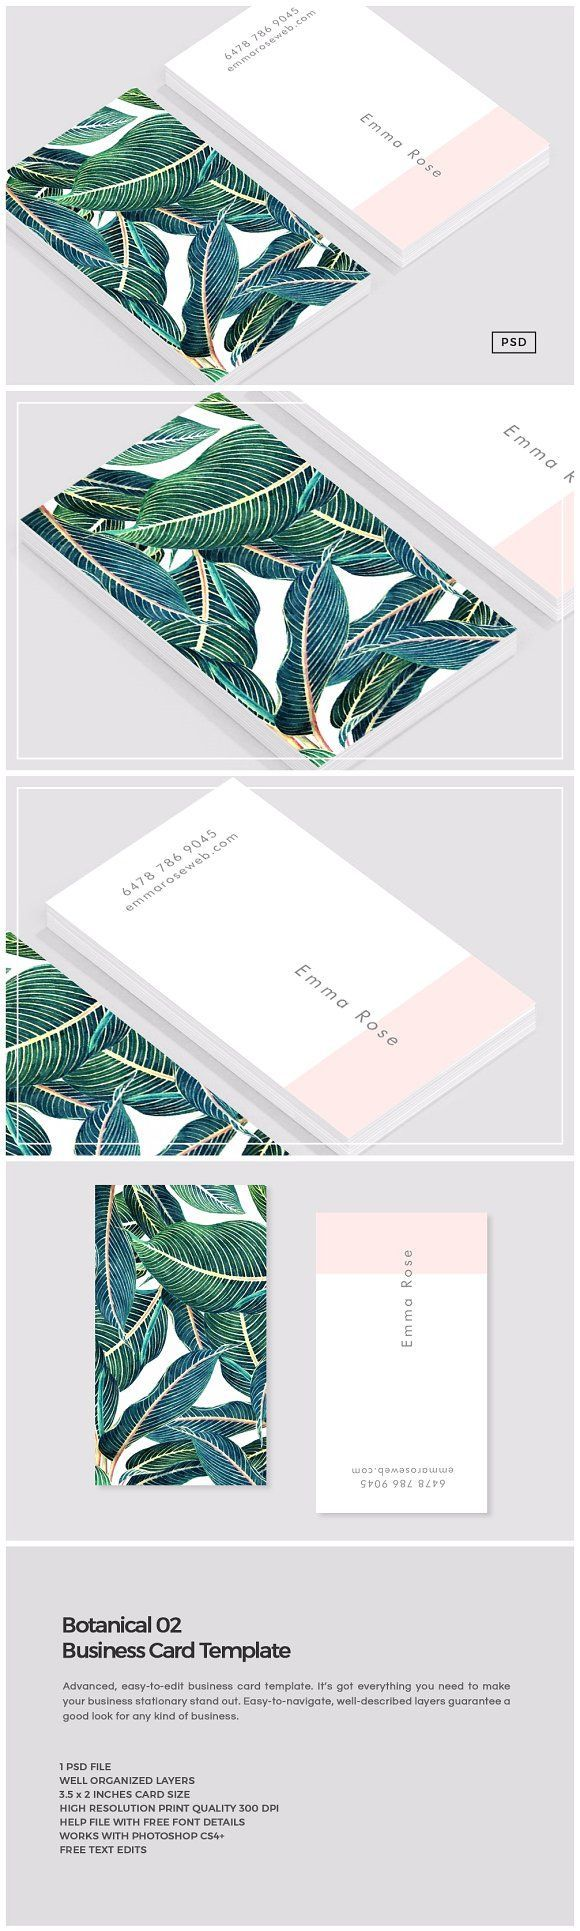 867 best business card designs images on pinterest business cards botanical 02 business card template reheart Gallery